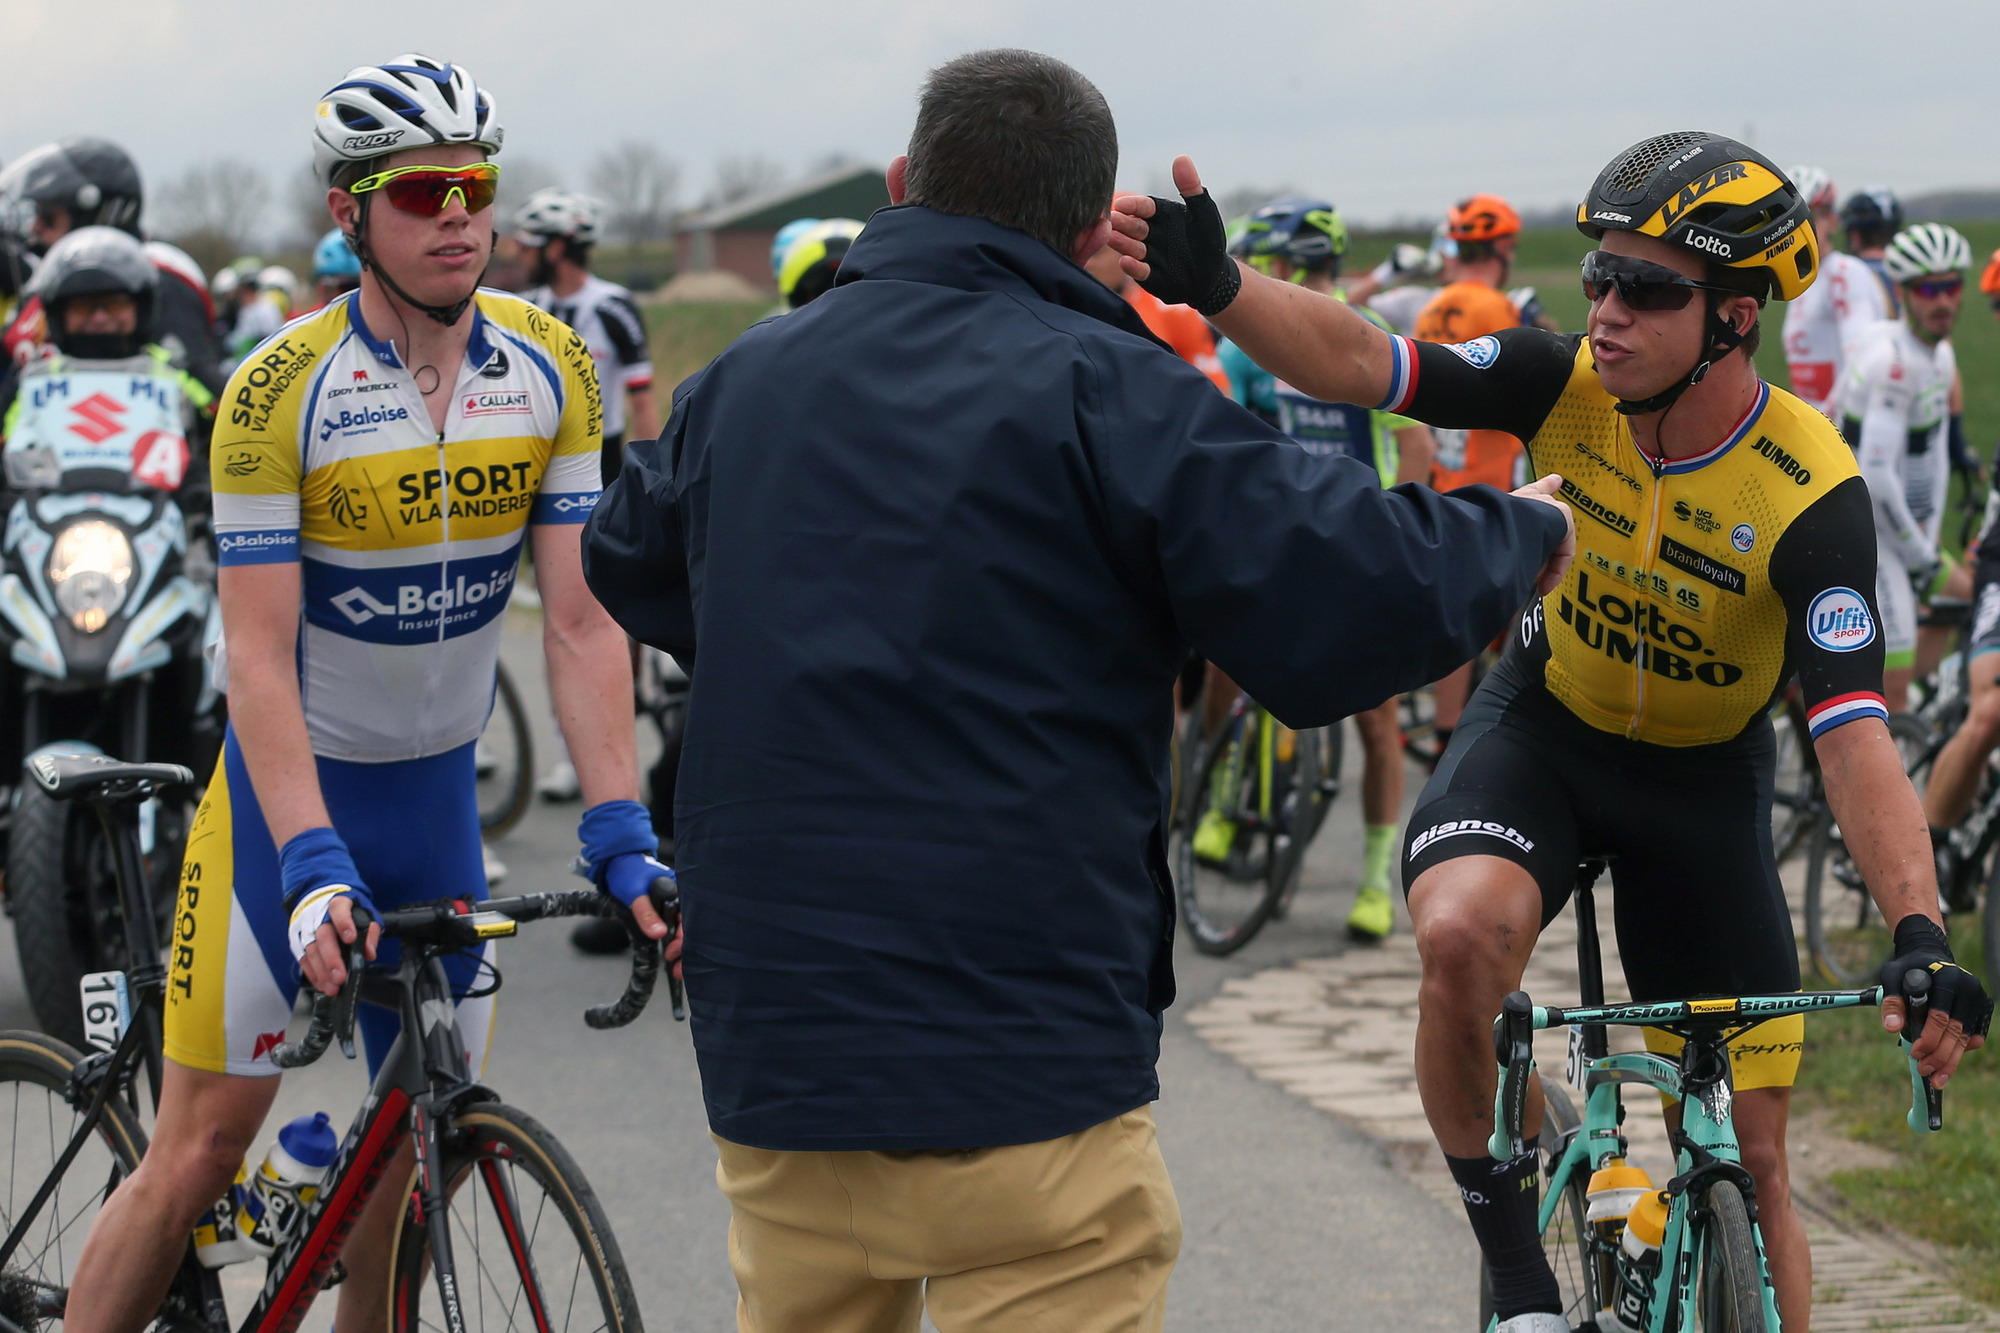 Groenewegen: They should have disqualified the first group